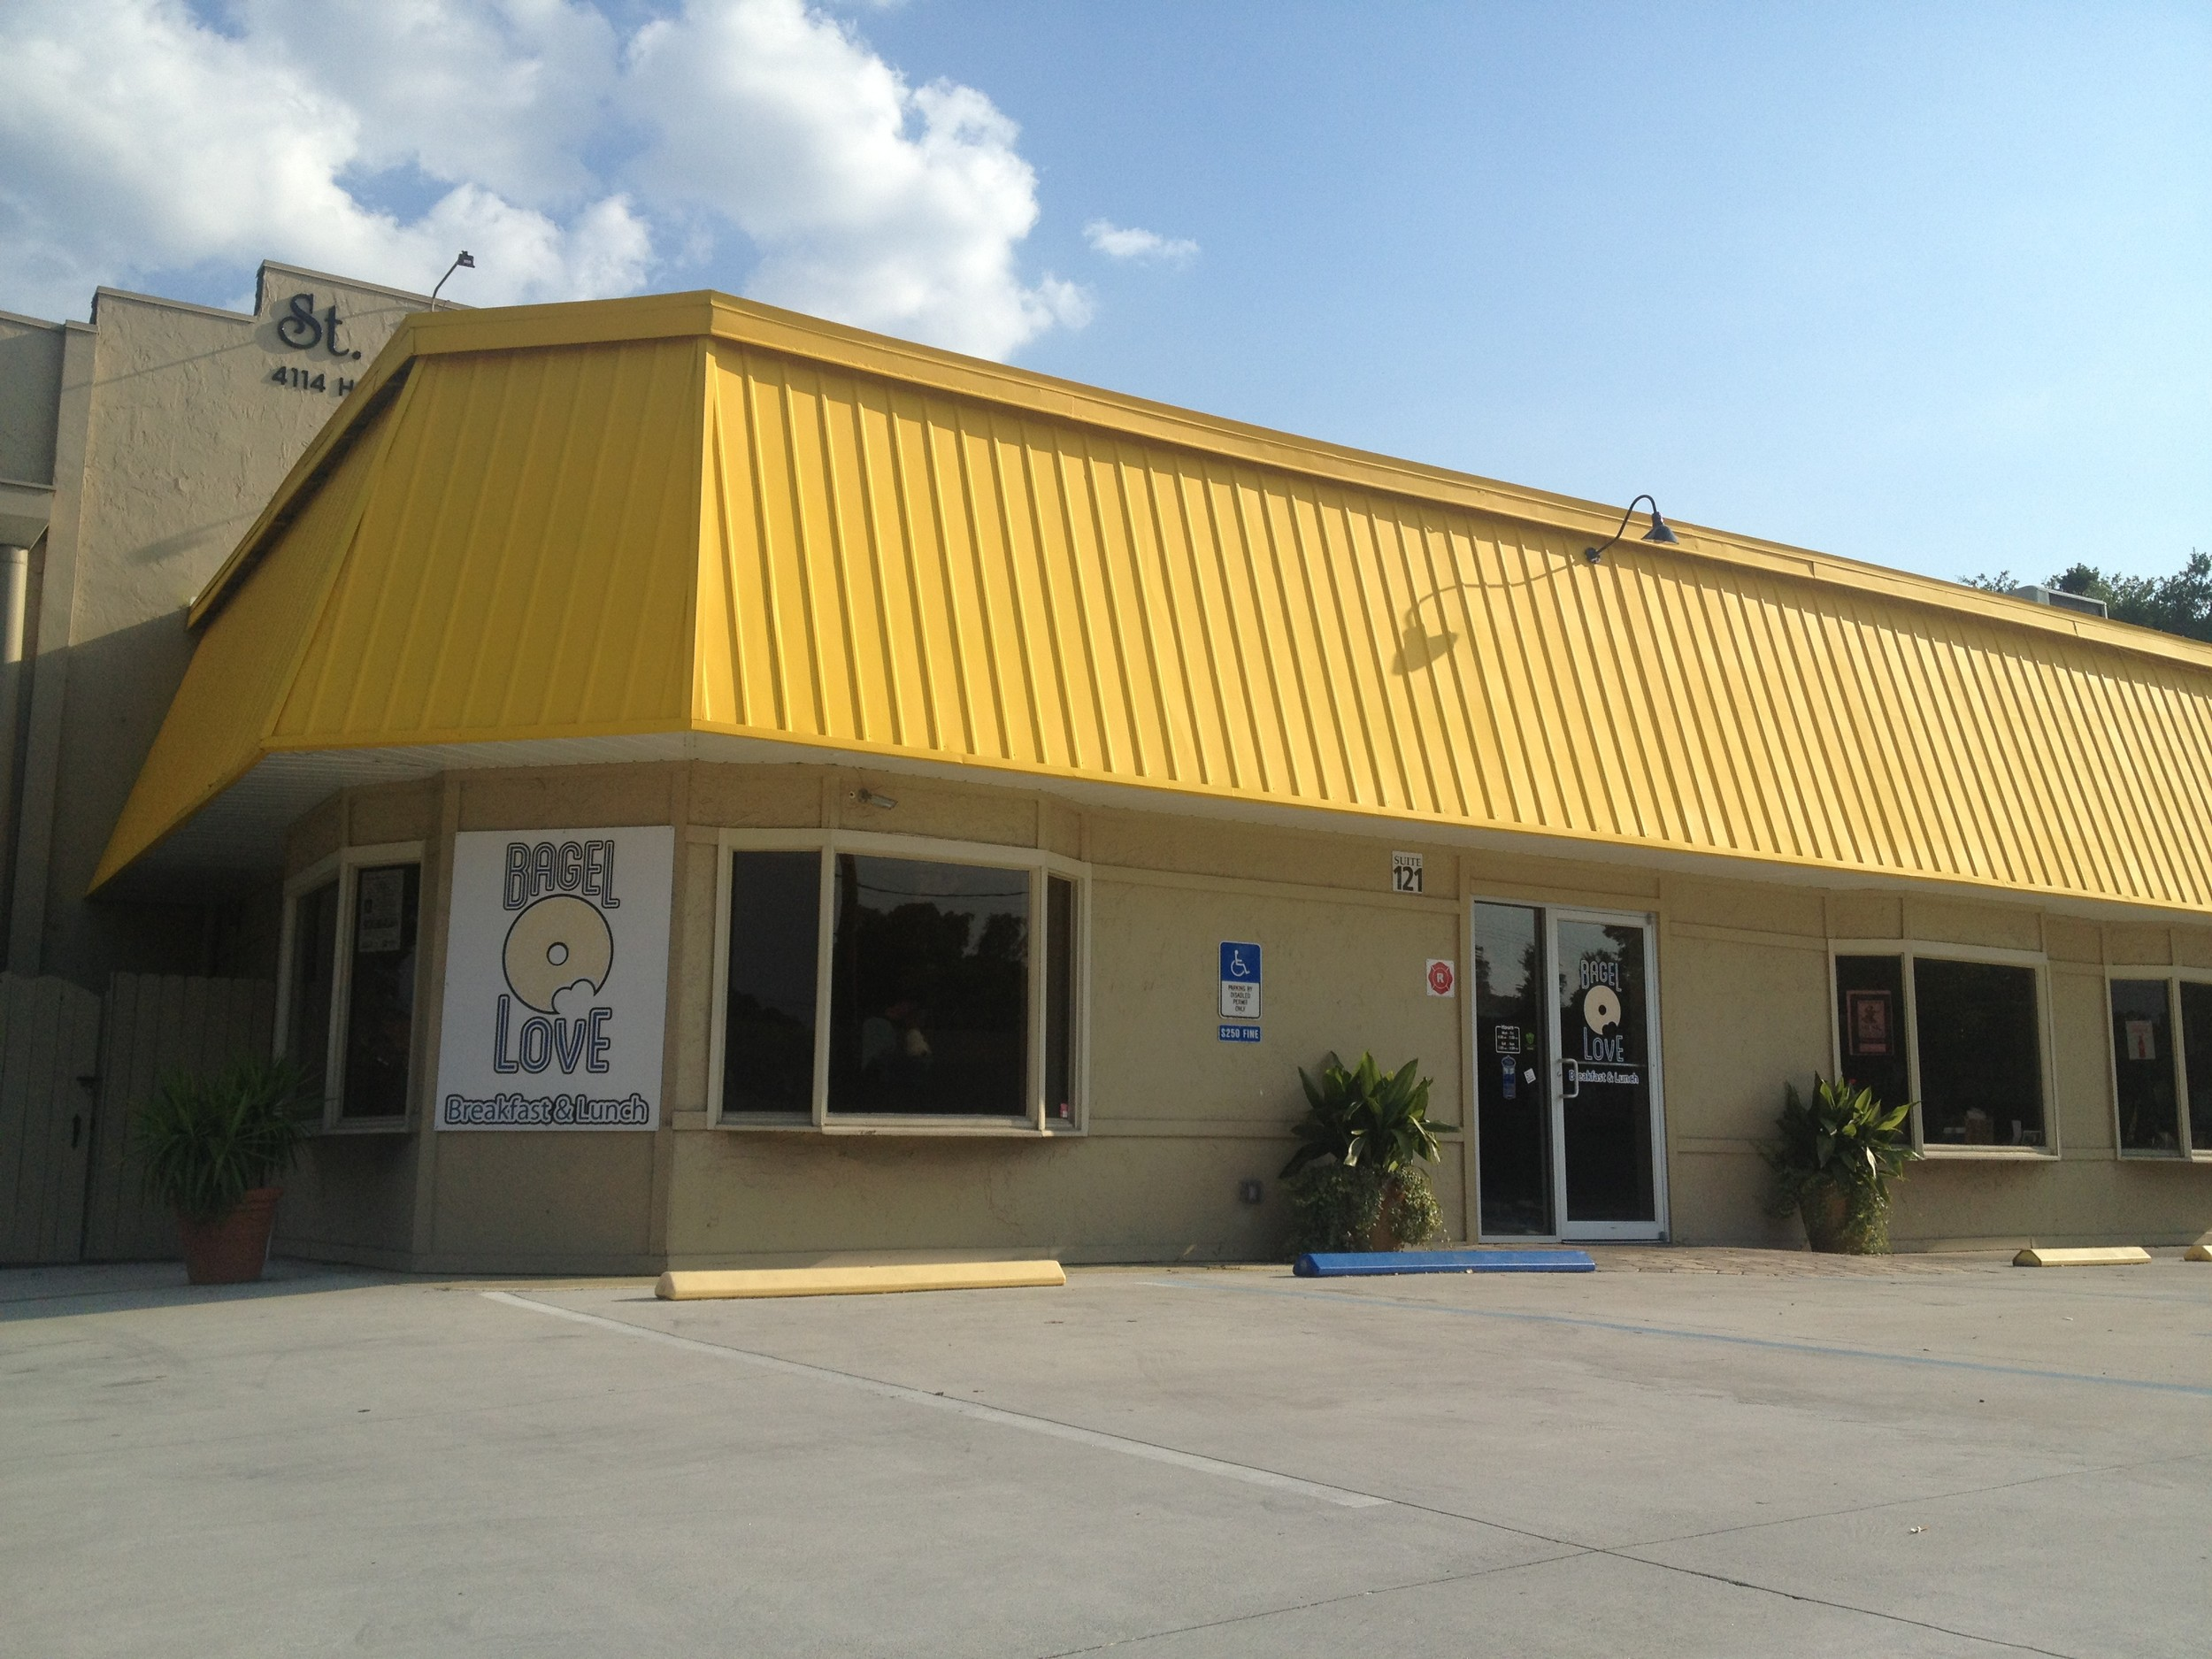 Near Avondale and Ortega, Bagel Love recently received a fresh coat of yellow paint, making it easy to locate.